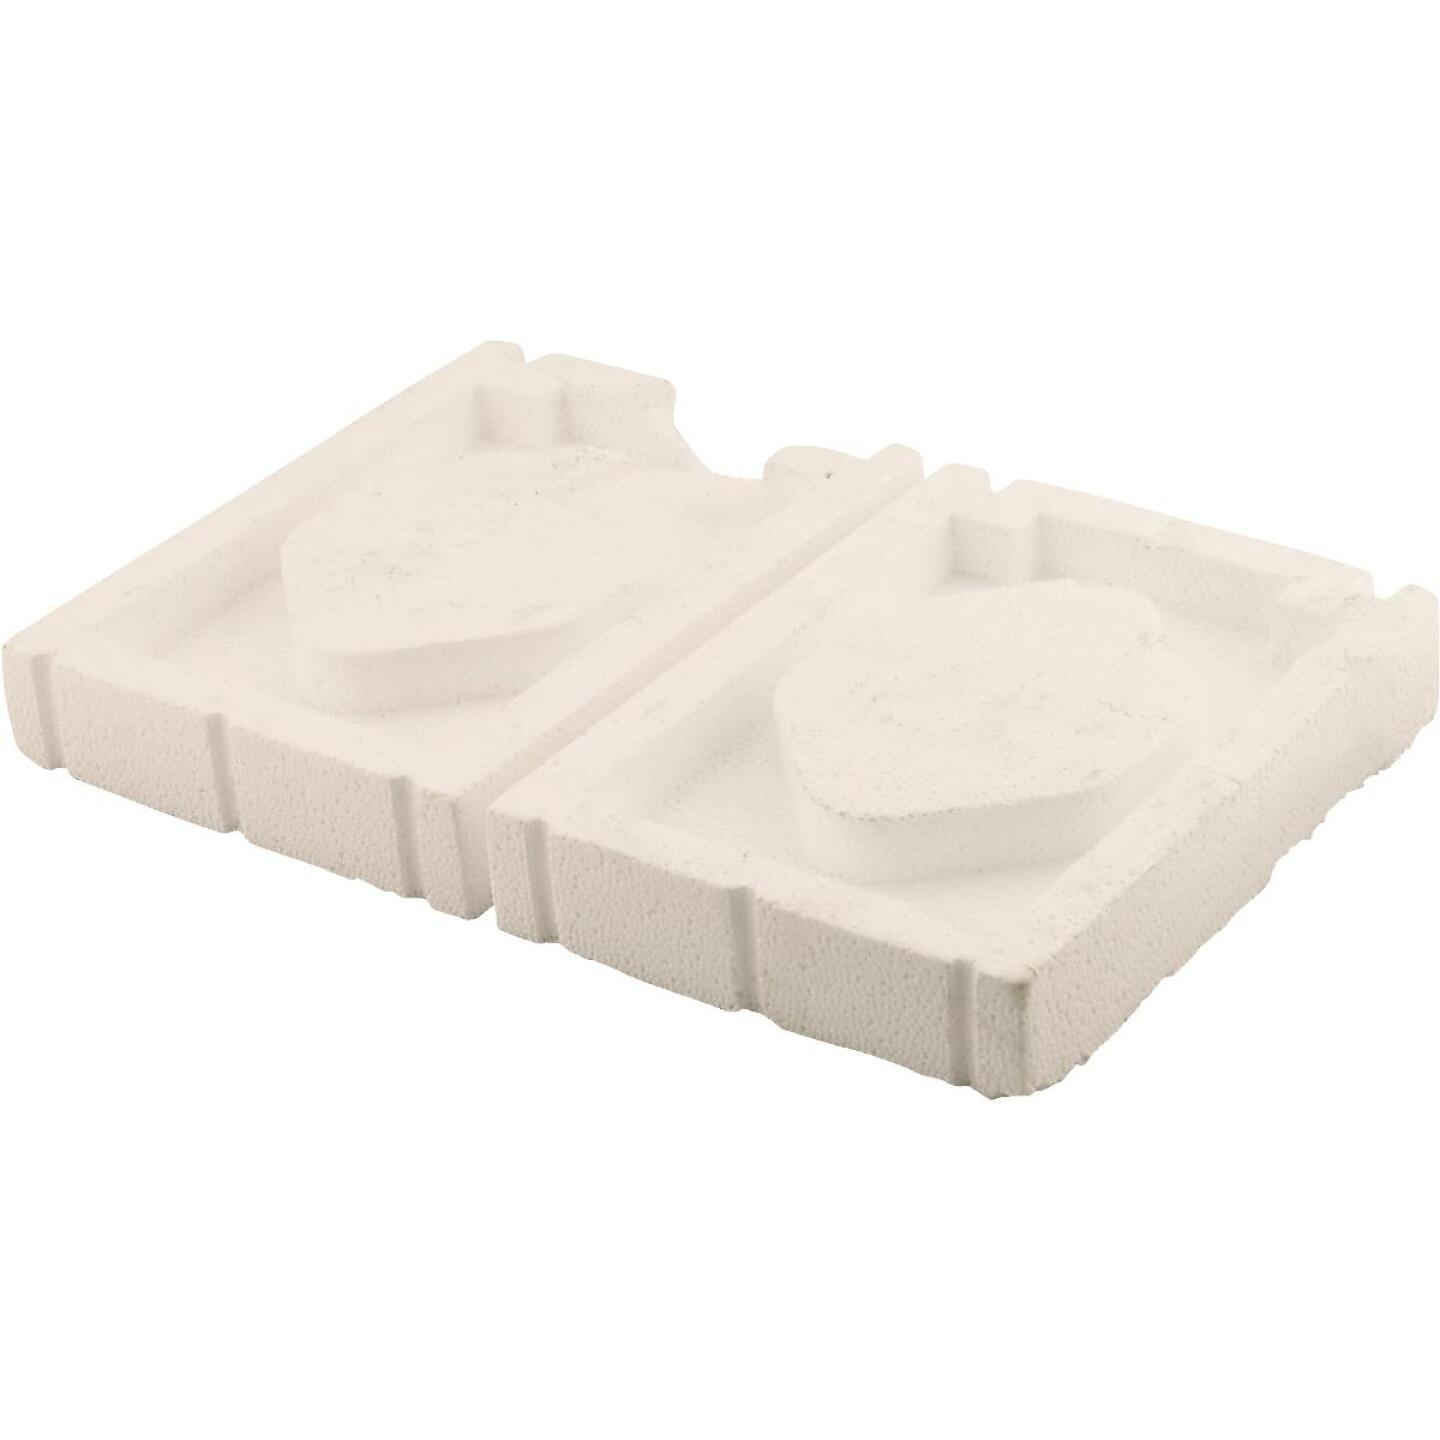 NorWesco 6-1/2 In. x 8-3/4 In. Automatic Vent Foam Plug (2 Count) Image 1